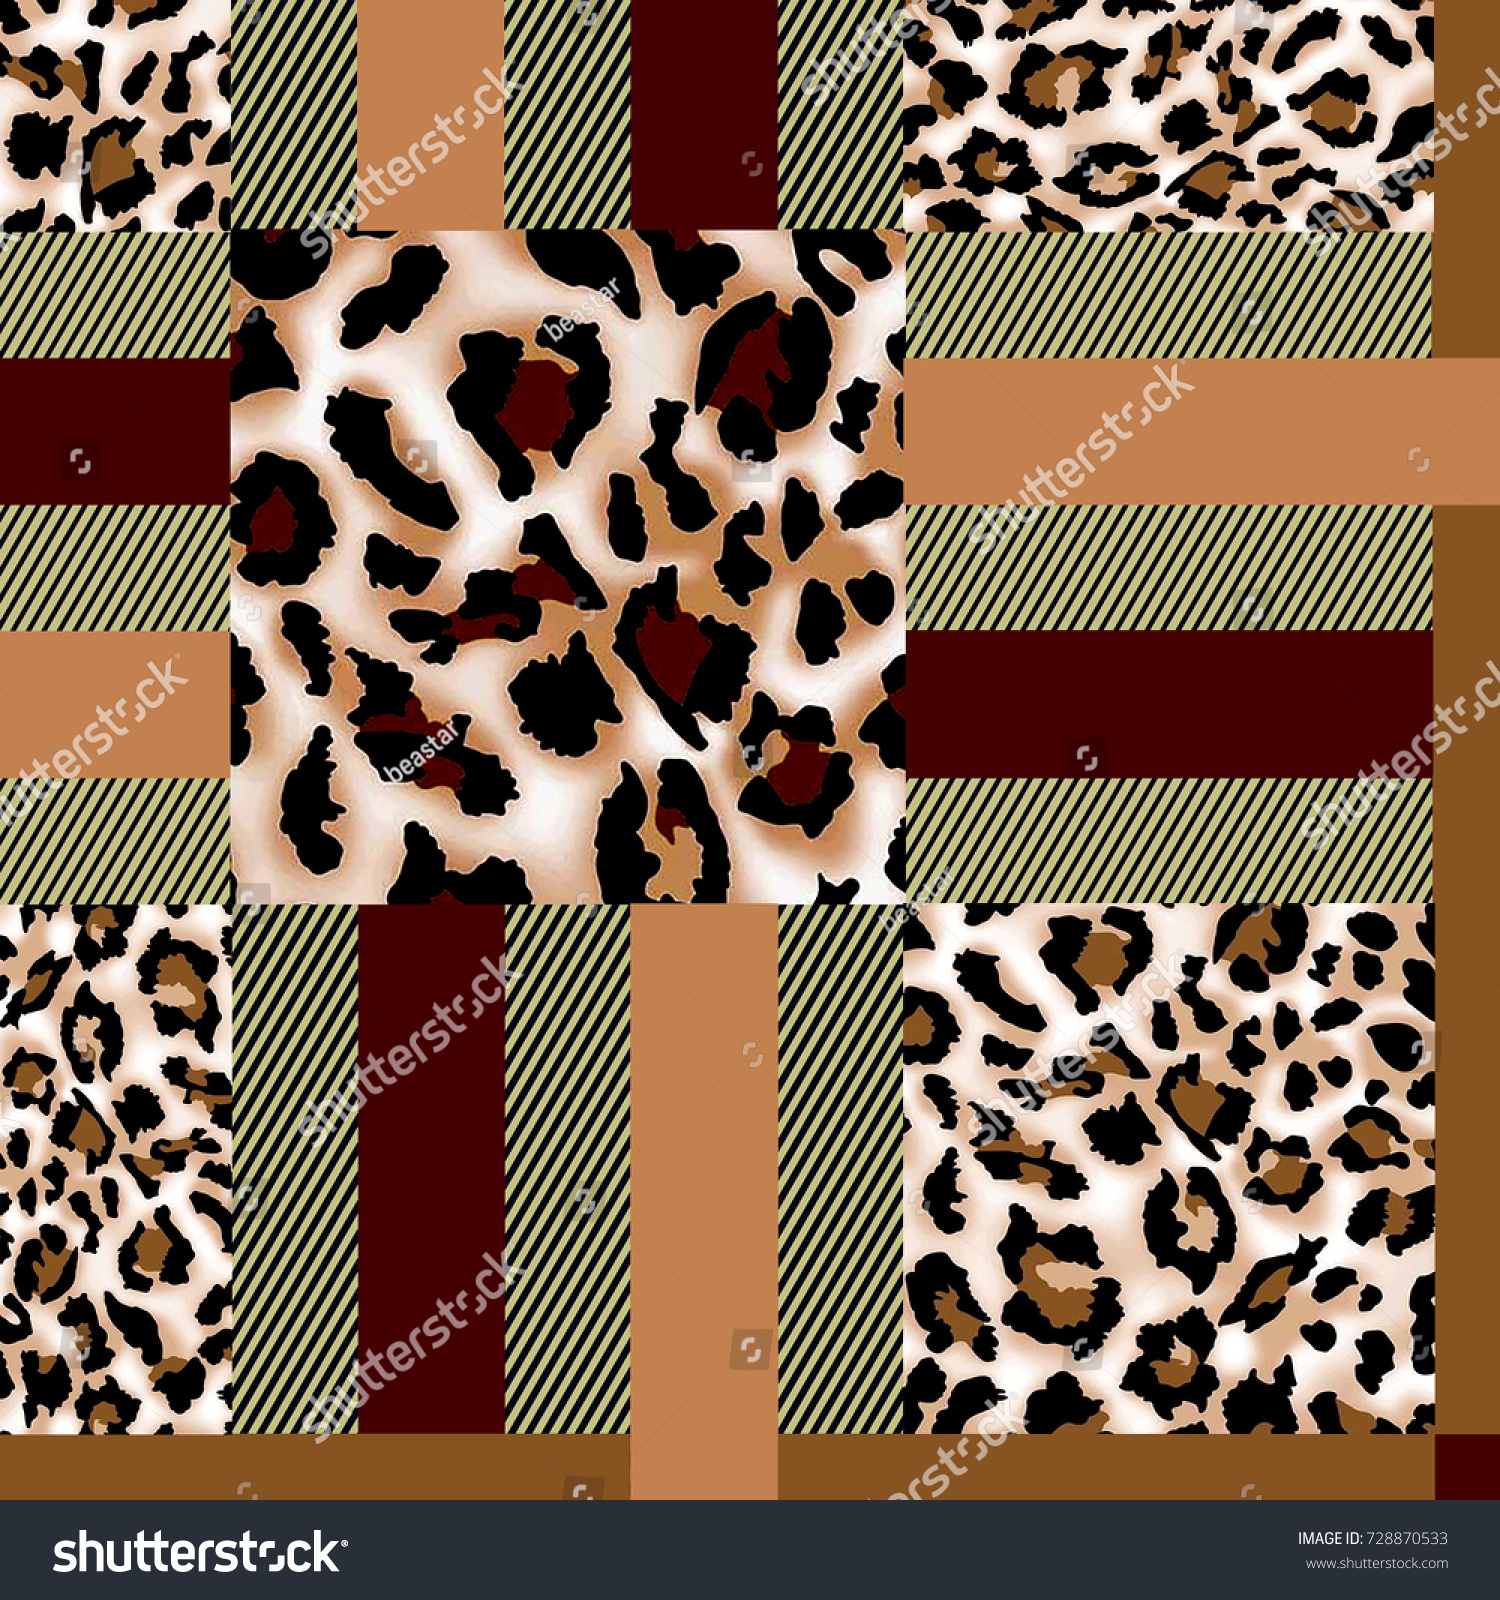 Leopard Print Business Cards Image collections - Free Business Cards